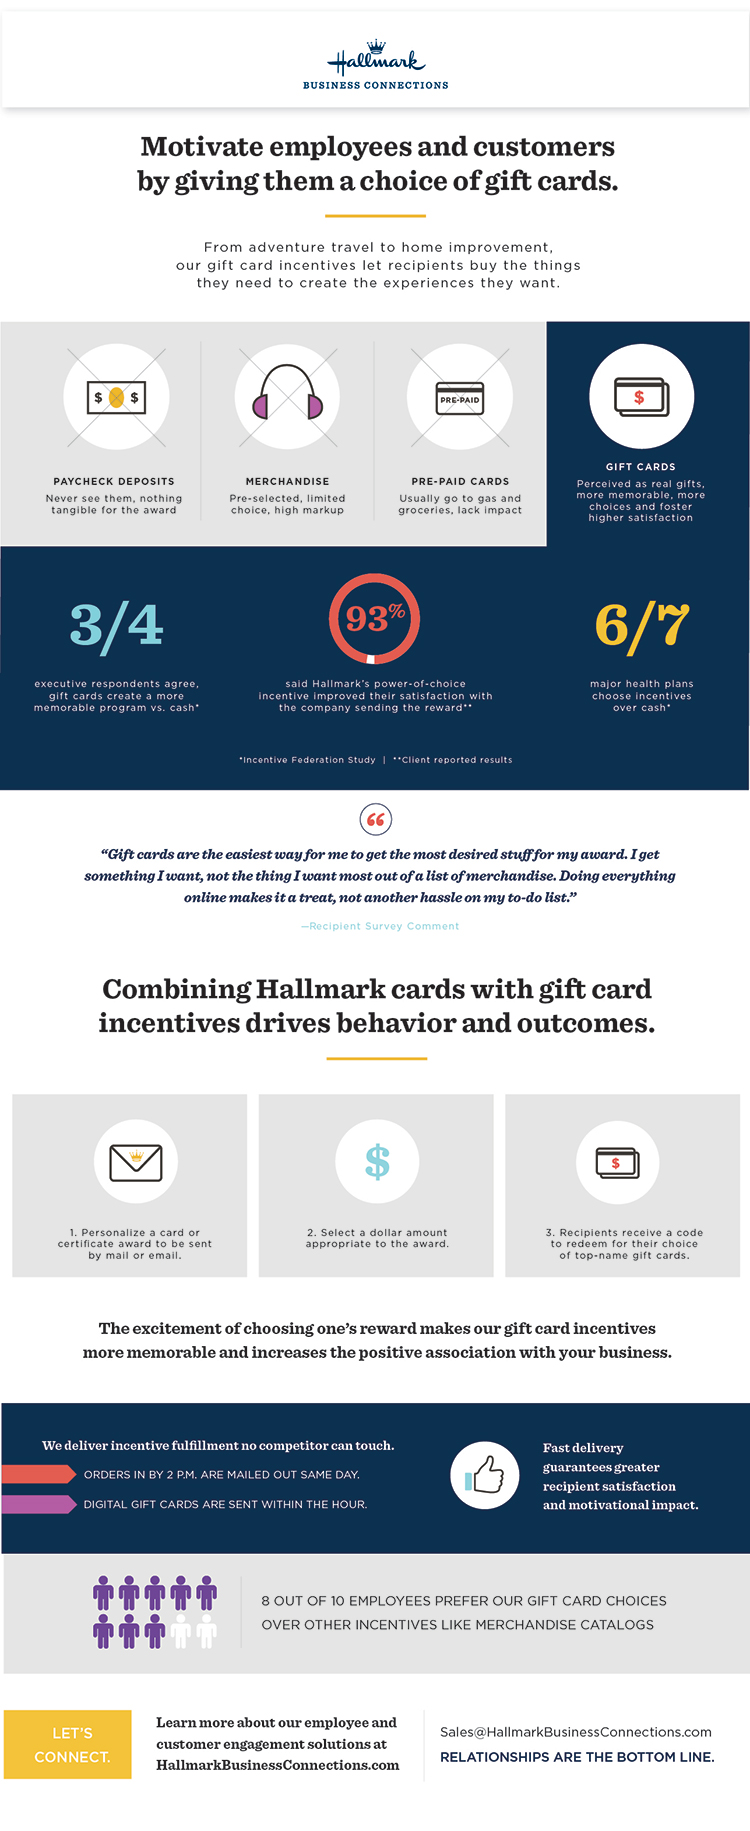 3/4 executives say gift cards are more memorable than cash. 6/7 major health plans choose incentives over cash.* 93% customers have increased company satisfaction due to Hallmark power of choice.† *Incentive Federation study †Client-reported results